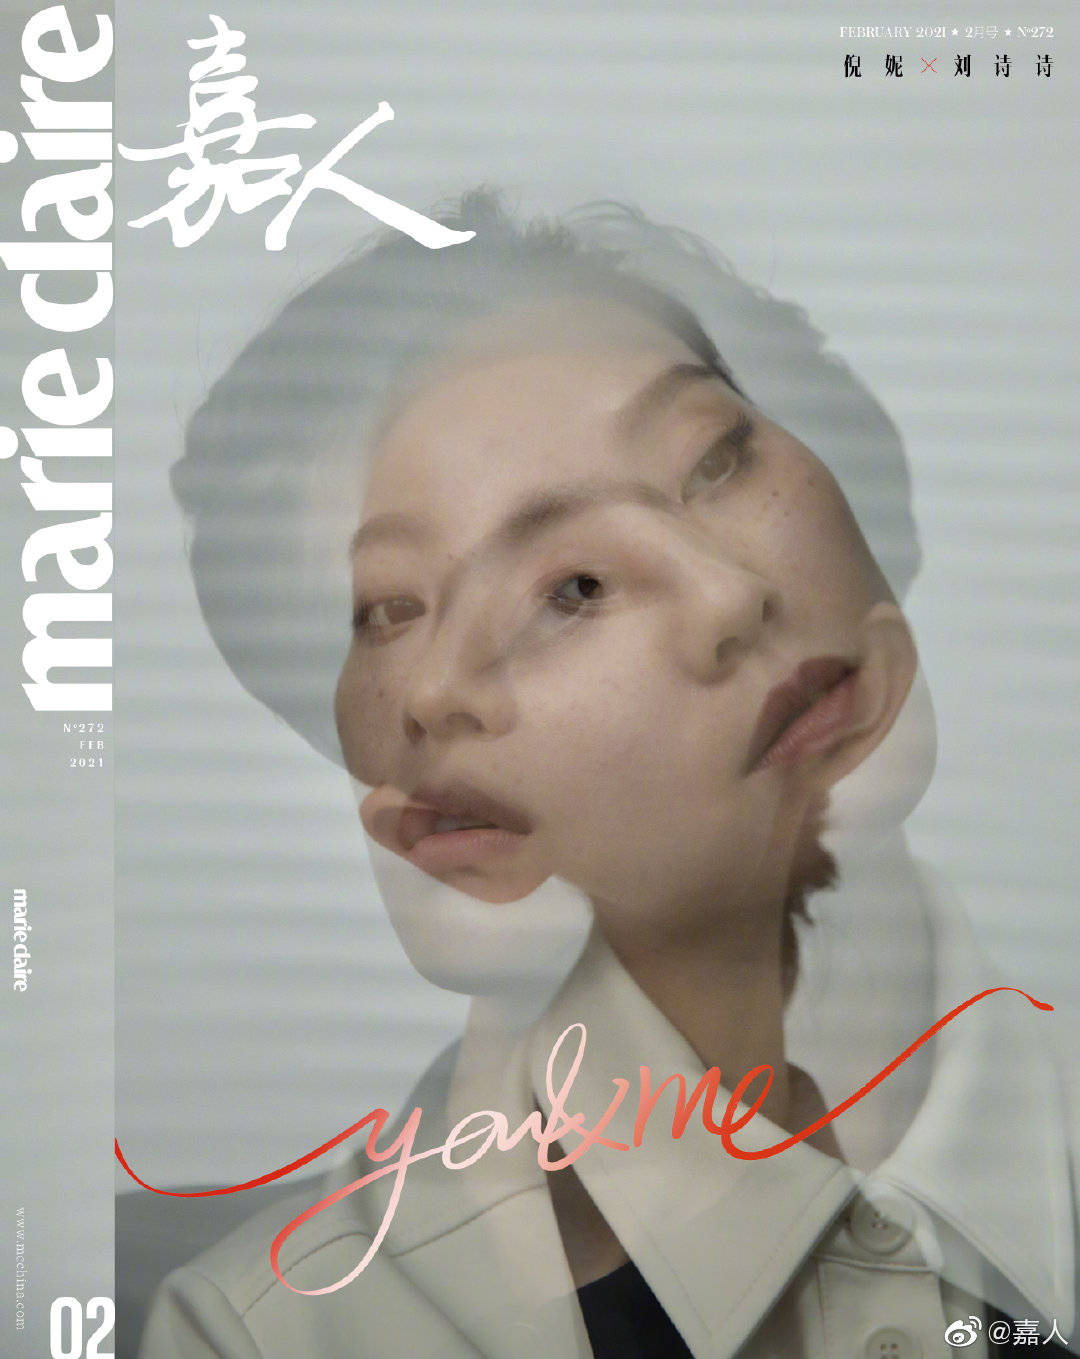 Actress Ni Ni and Liu Shishi on the cover of the February 2021 issue of Marie Claire China.